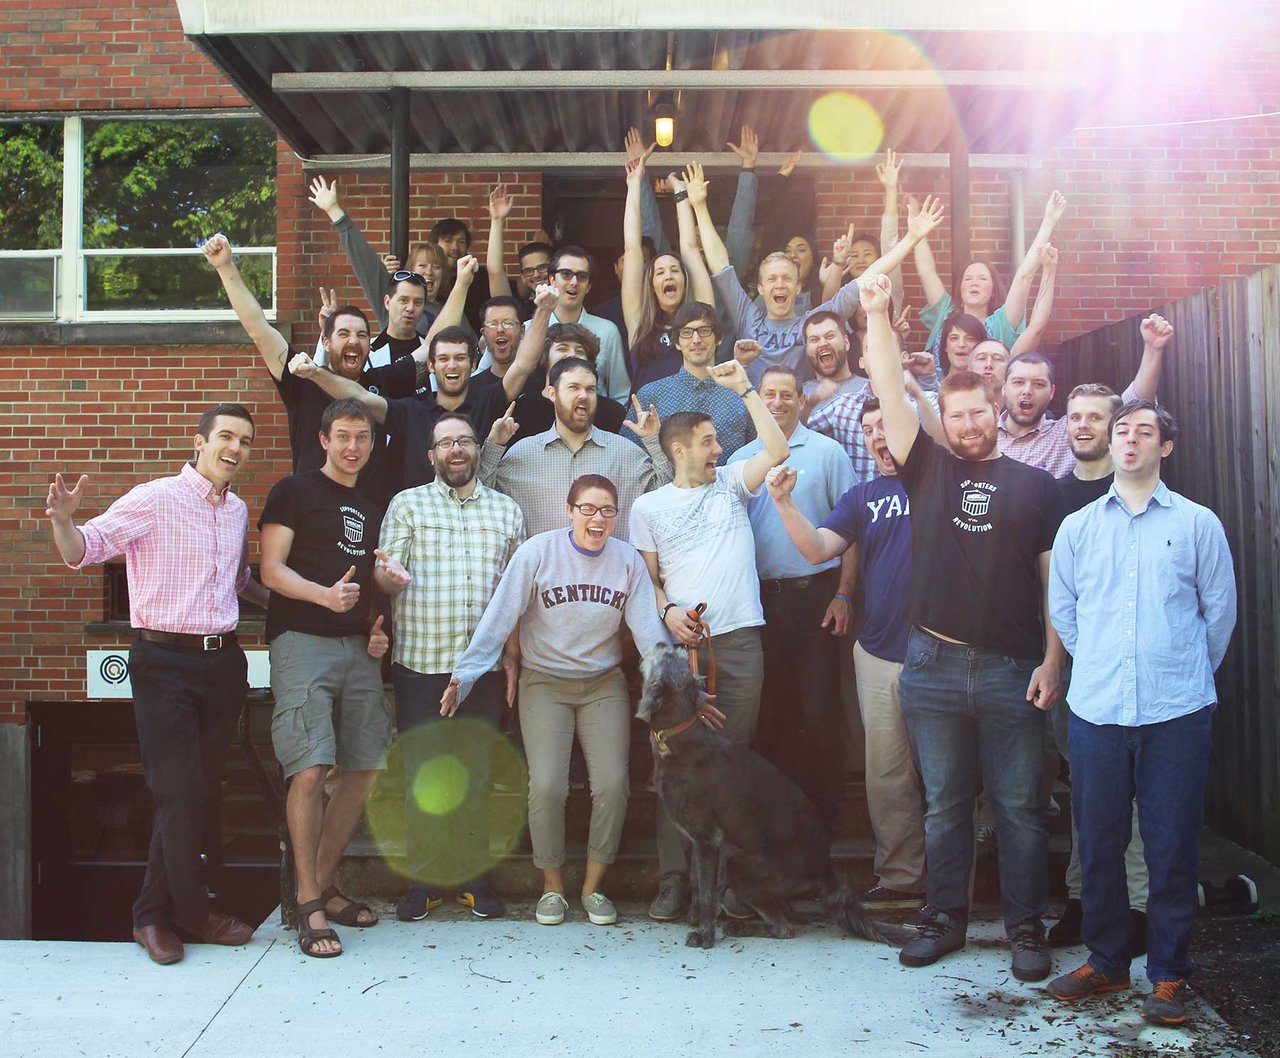 20 Best Companies To Work For In Lexington, KY - Zippia